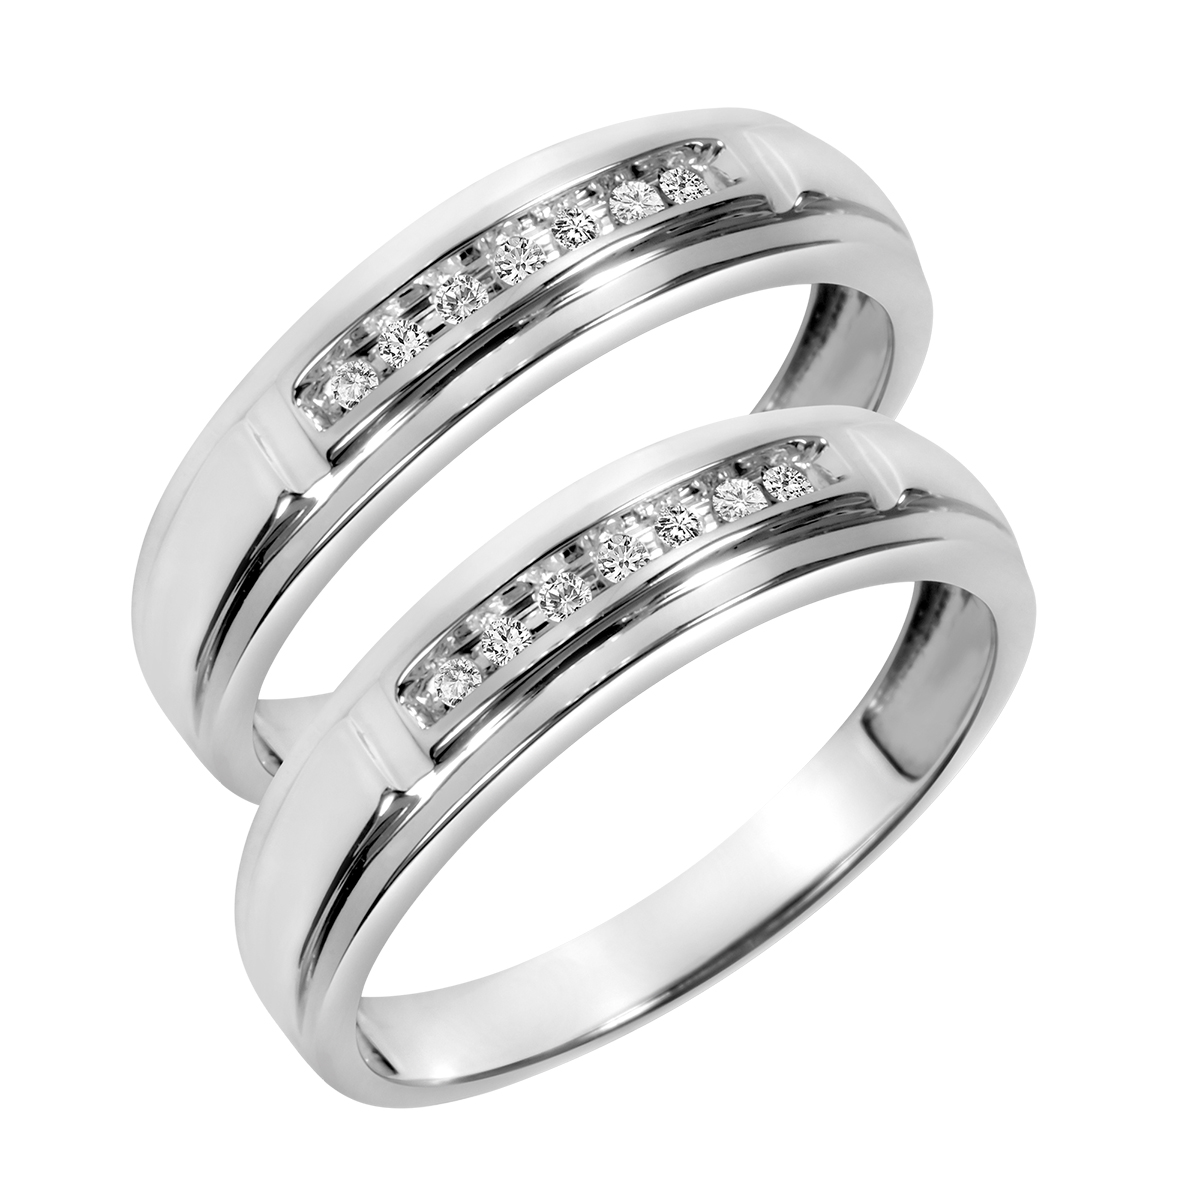 1/7 Carat T.W. Round Cut Mens  Same Sex Wedding Band Set 10K White Gold- Size 8